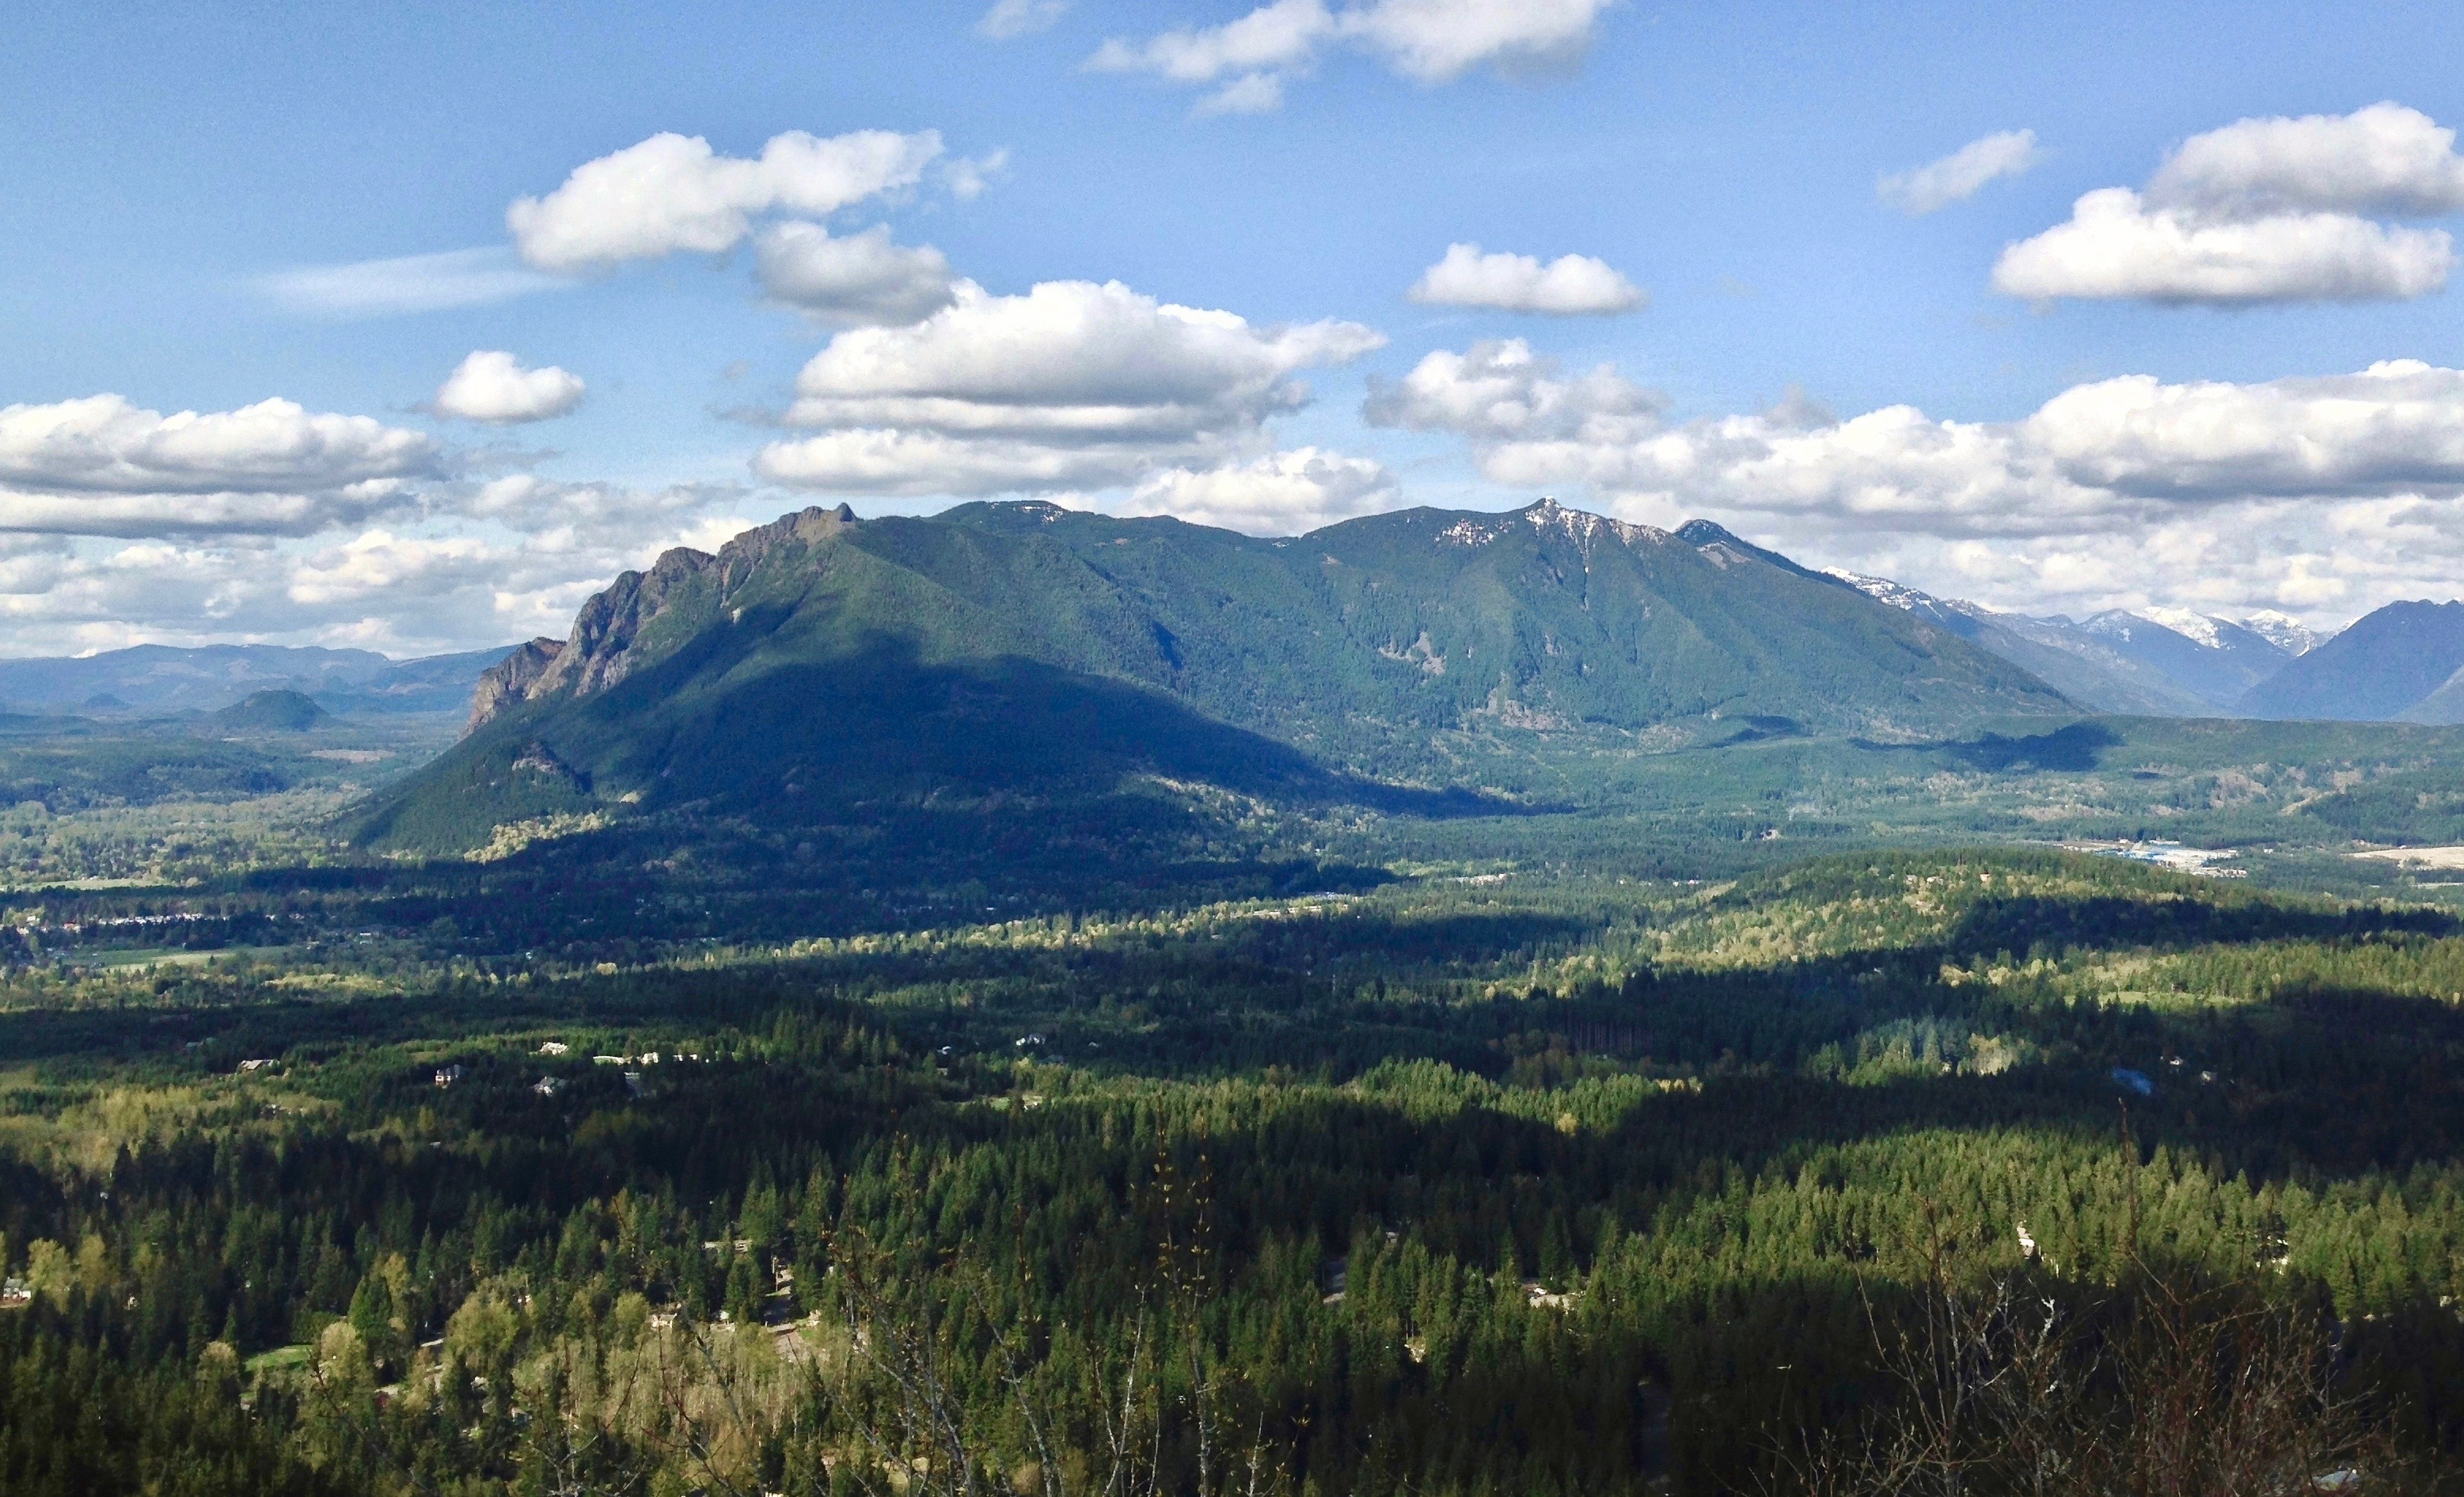 Mount Si and Mount Teneriffe rise to the north across the cloud-dappled Snoqualmie River Valley from Rattlesnake Ledge. Rattlesnake Mountain Trail, April 26, 2014.